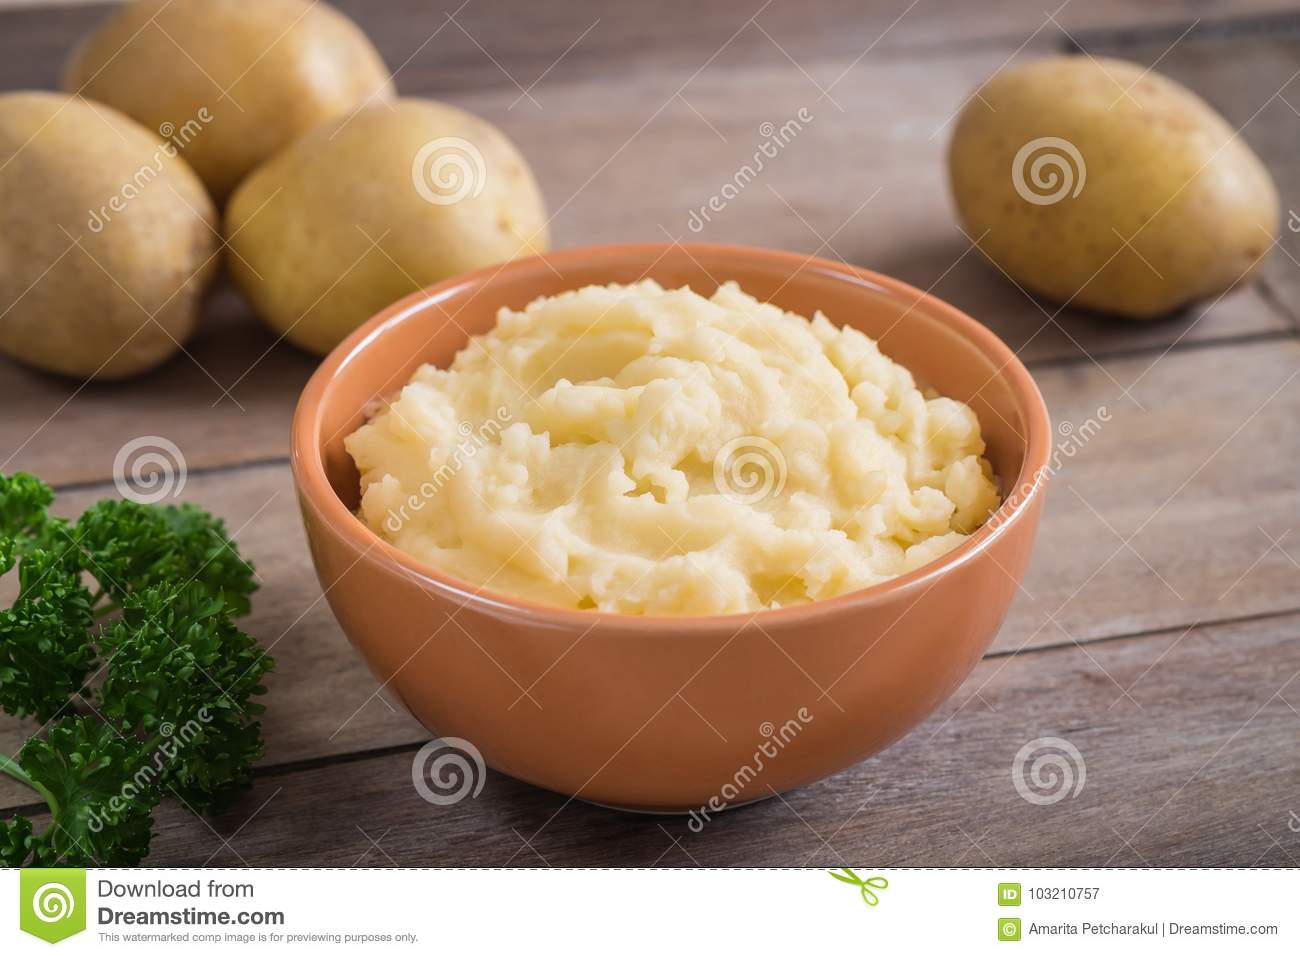 Mashed potato in bowl and fresh potatoes on wooden table